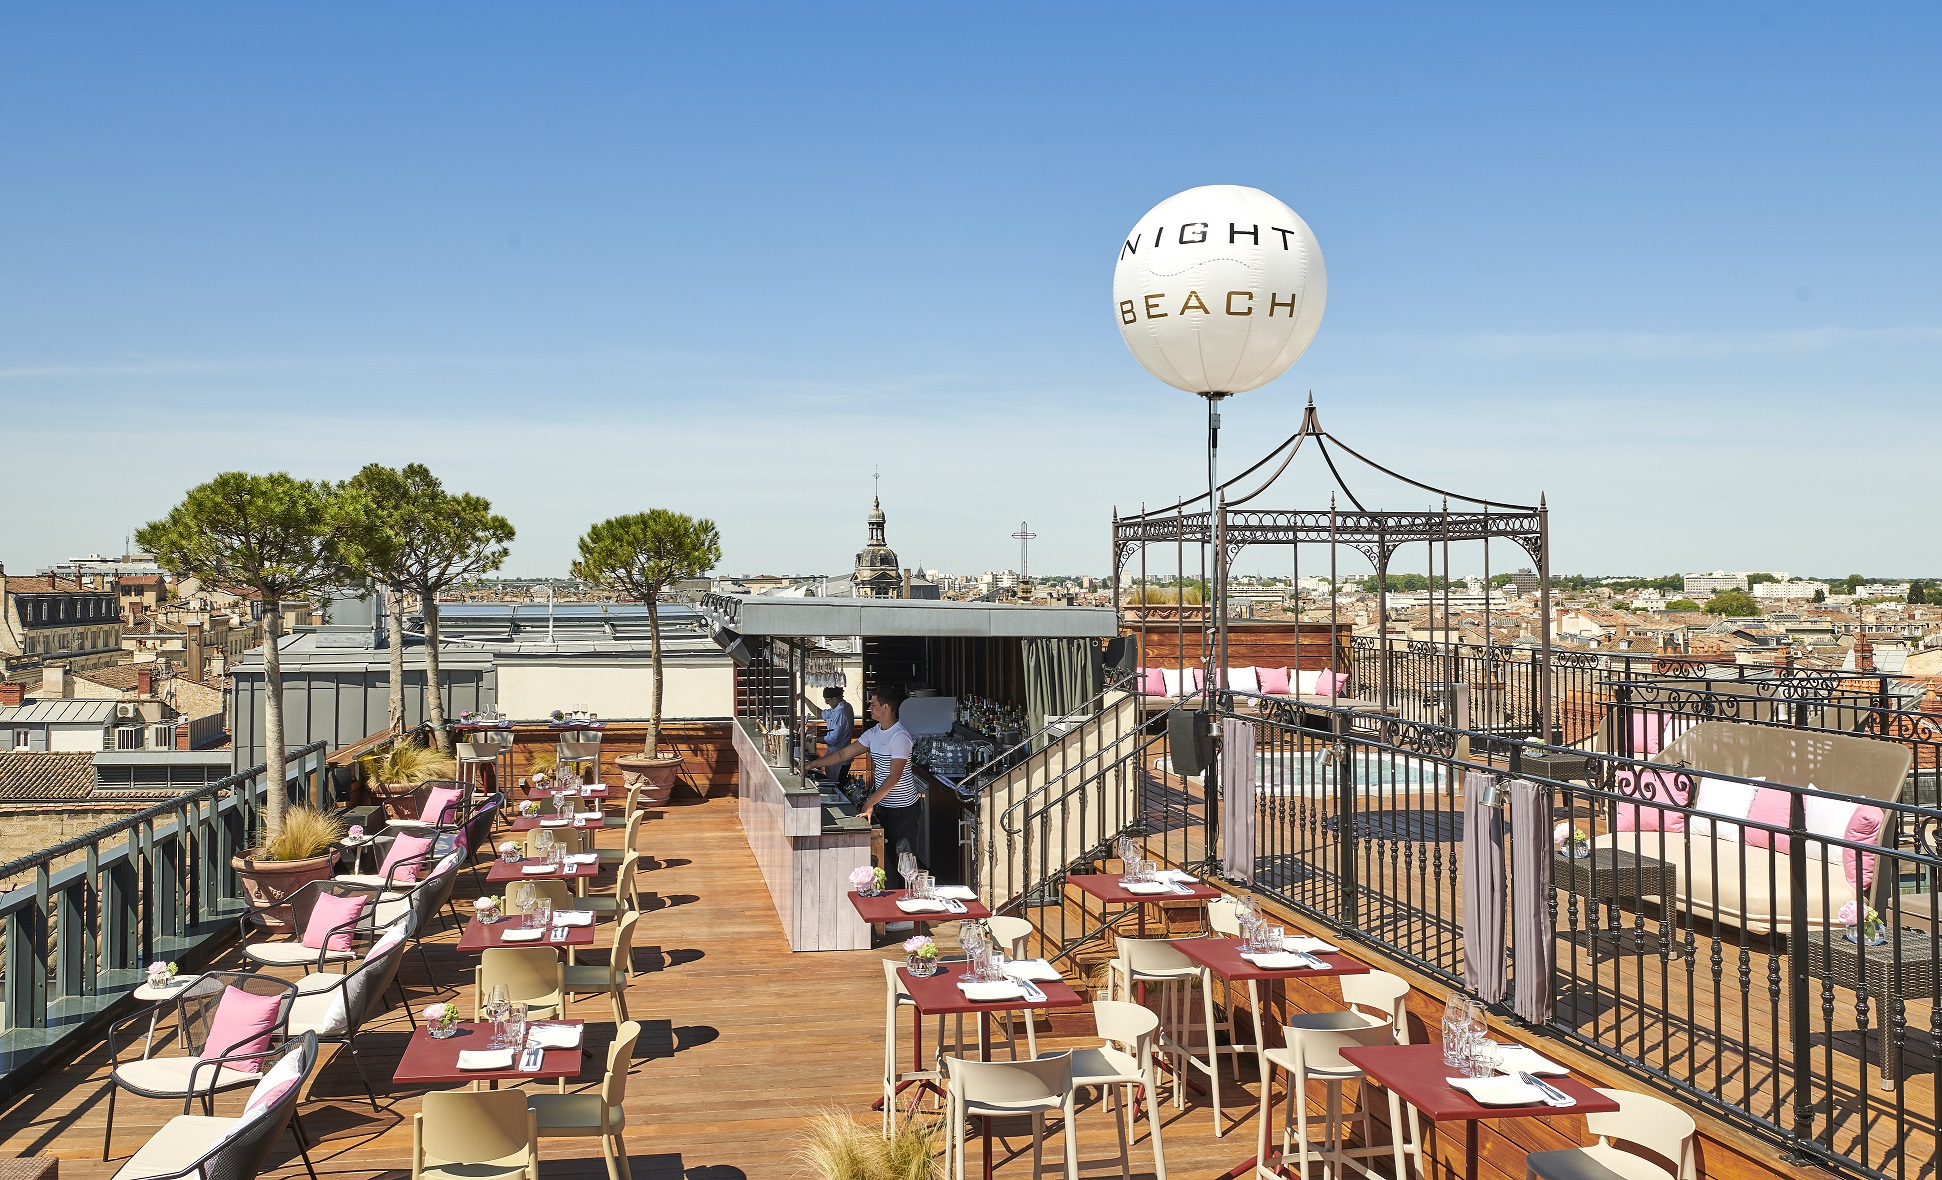 Toit Terrasse Nice Restaurant Rooftop Night Beach Intercontinental Bordeaux Le Grand Hotel